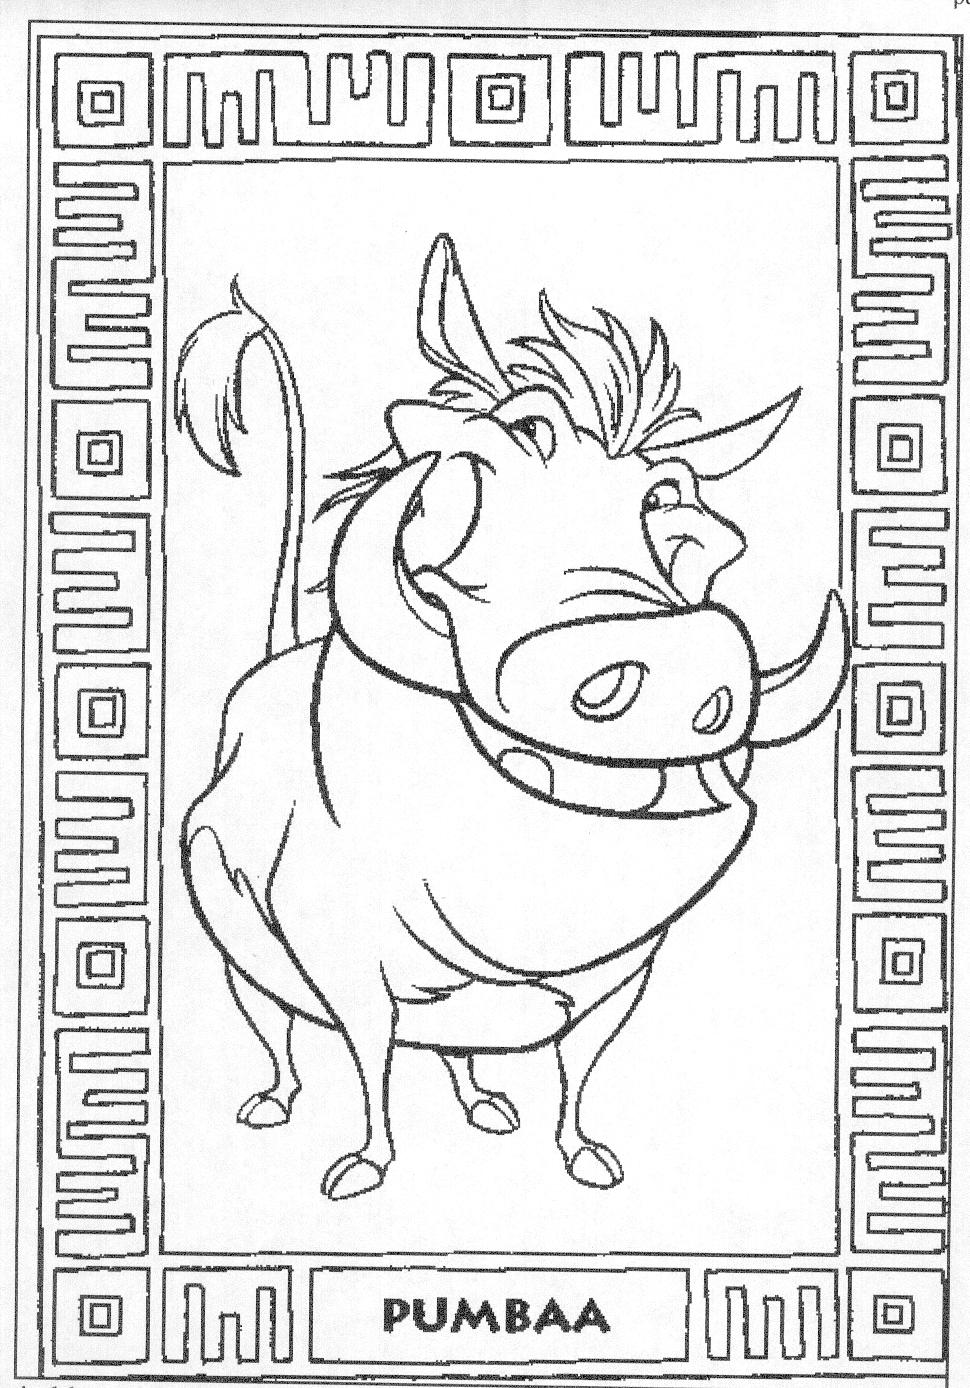 animated-coloring-pages-the-lion-king-image-0099